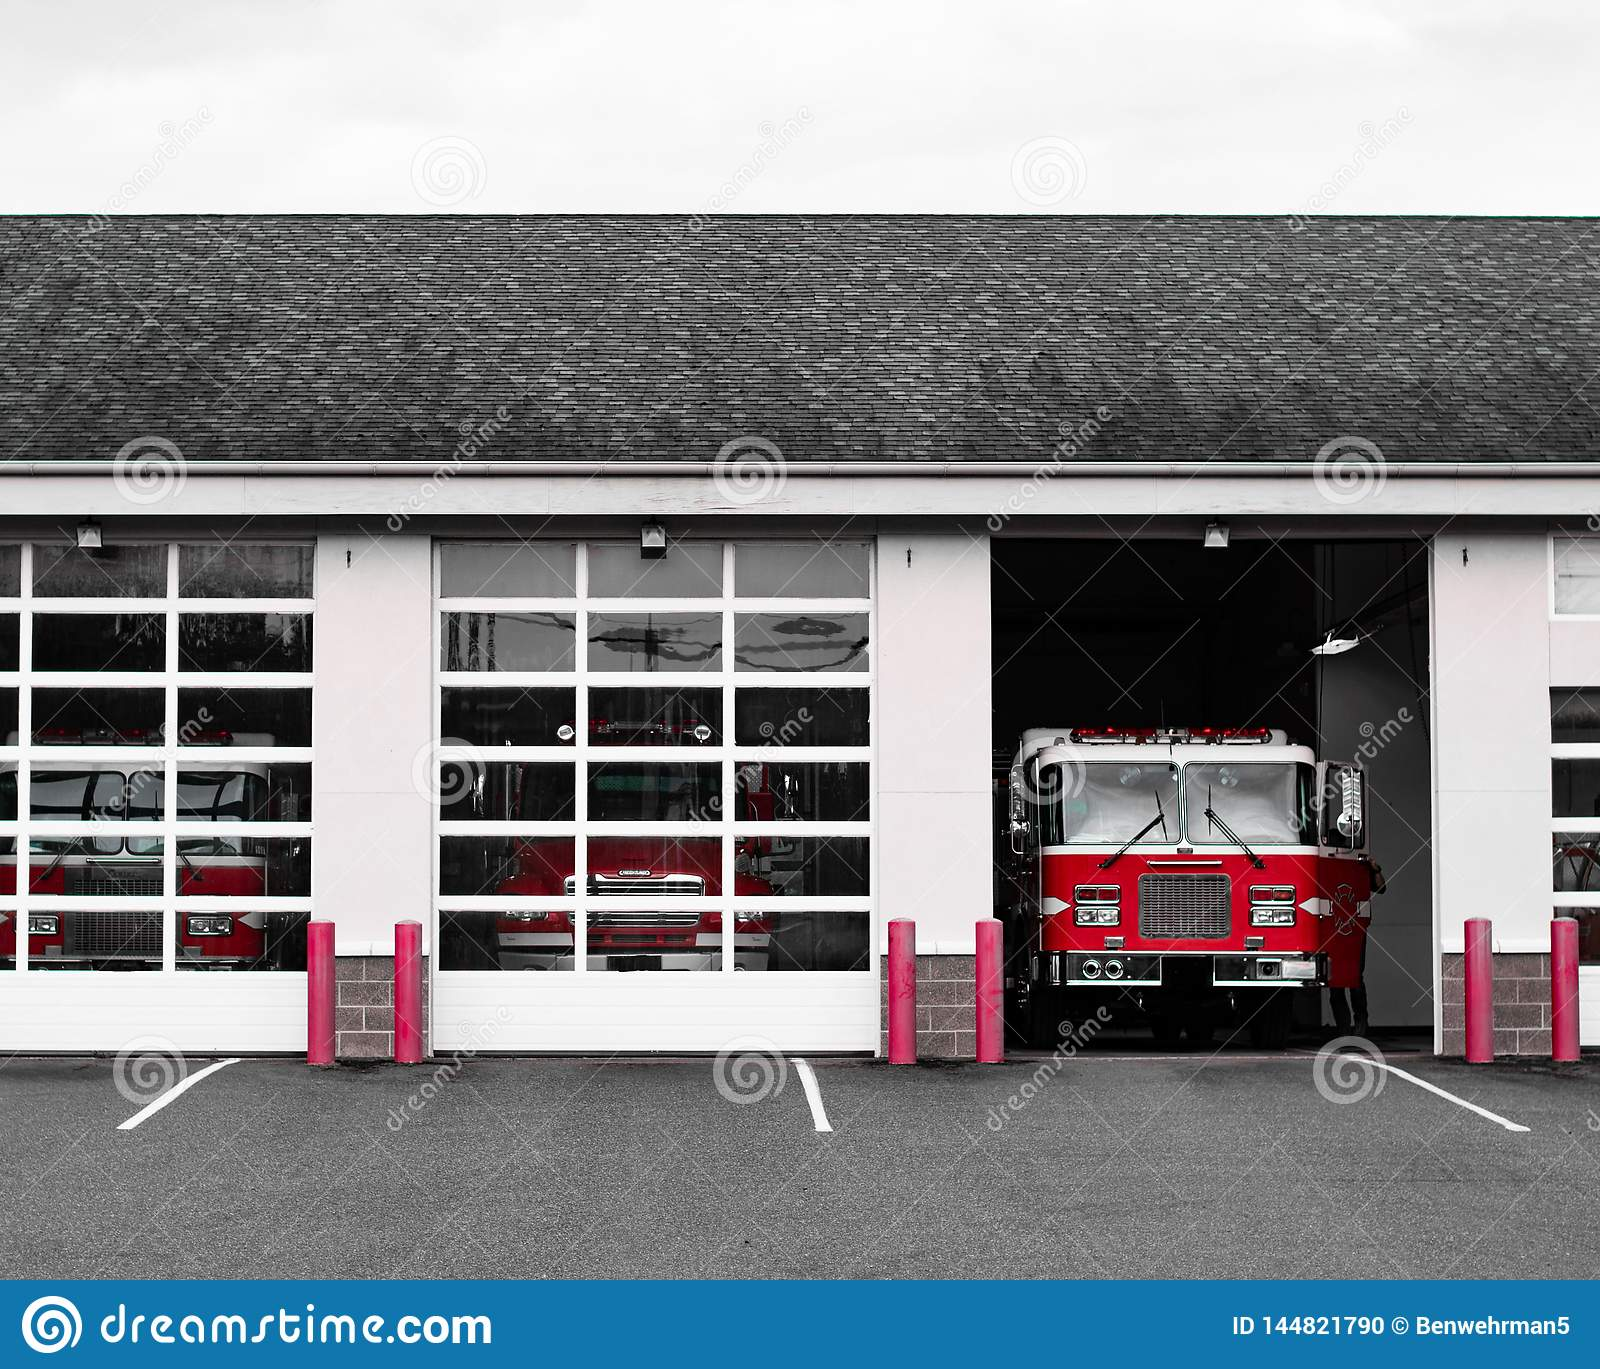 Fire Truck at the Station